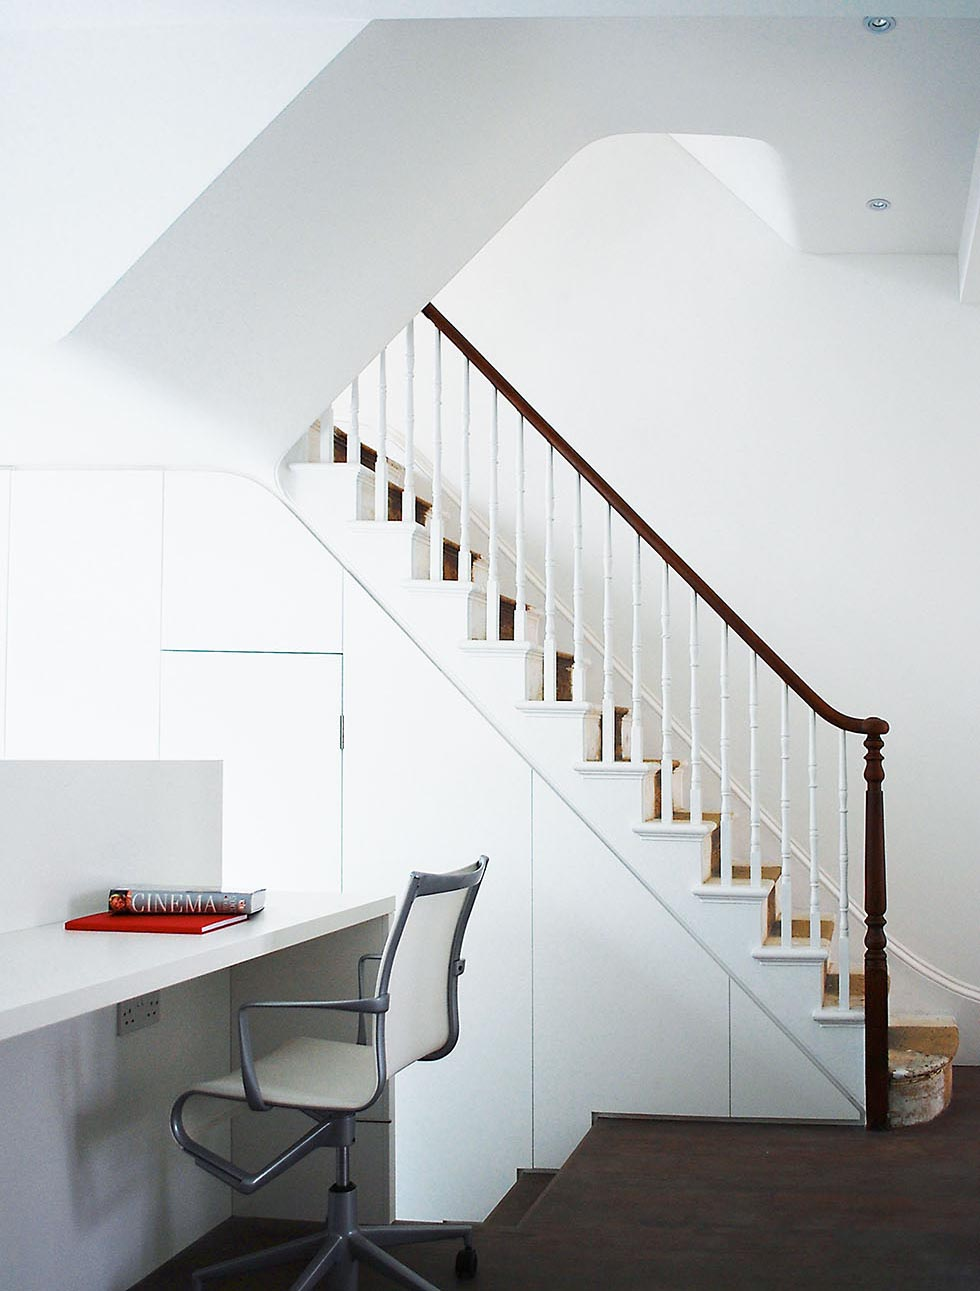 Recycled House Staircase Image ©RDA